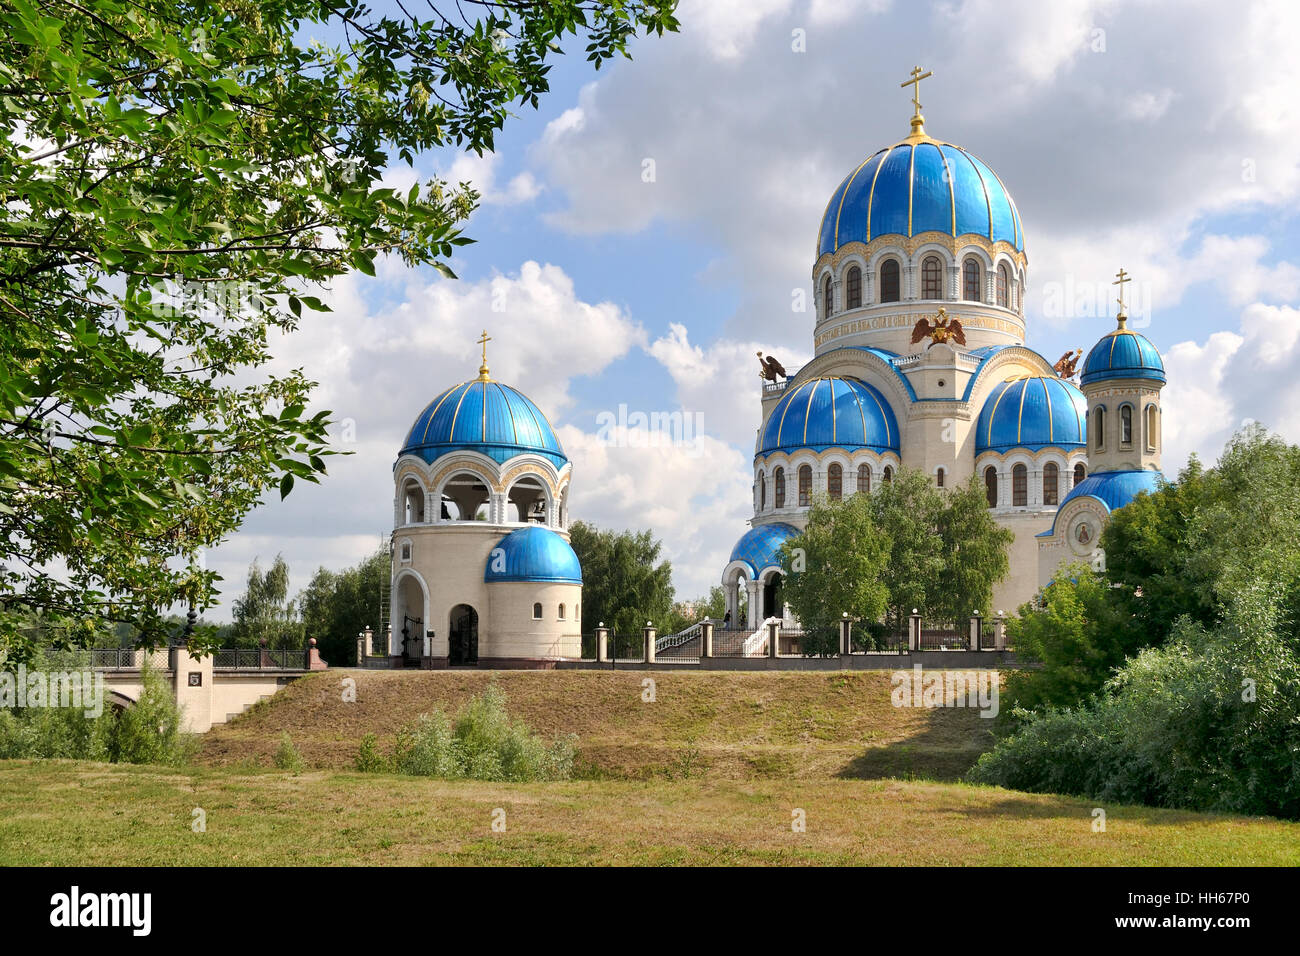 Holy Vivifying Trinity Cathedral Framed by Trees in Summer at Kashirskoye highway. Moscow, Russia - Stock Image